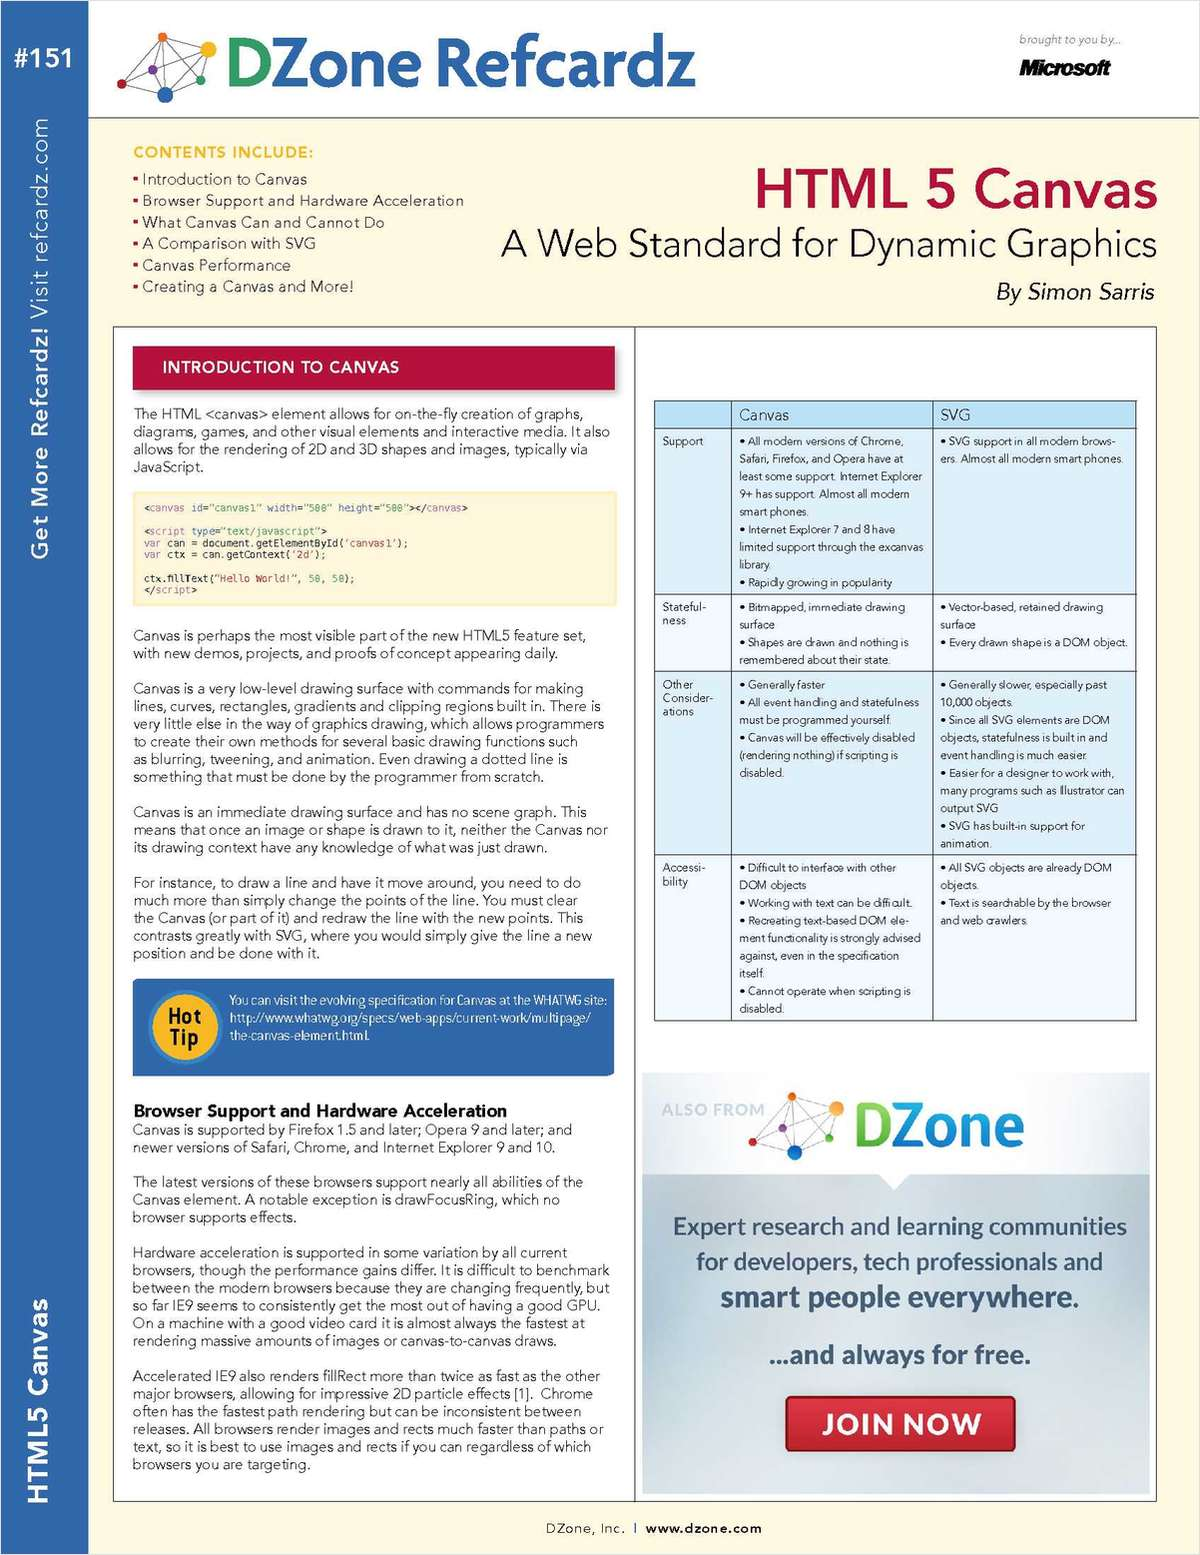 HTML 5 Canvas: A Web Standard for Dynamic Graphics